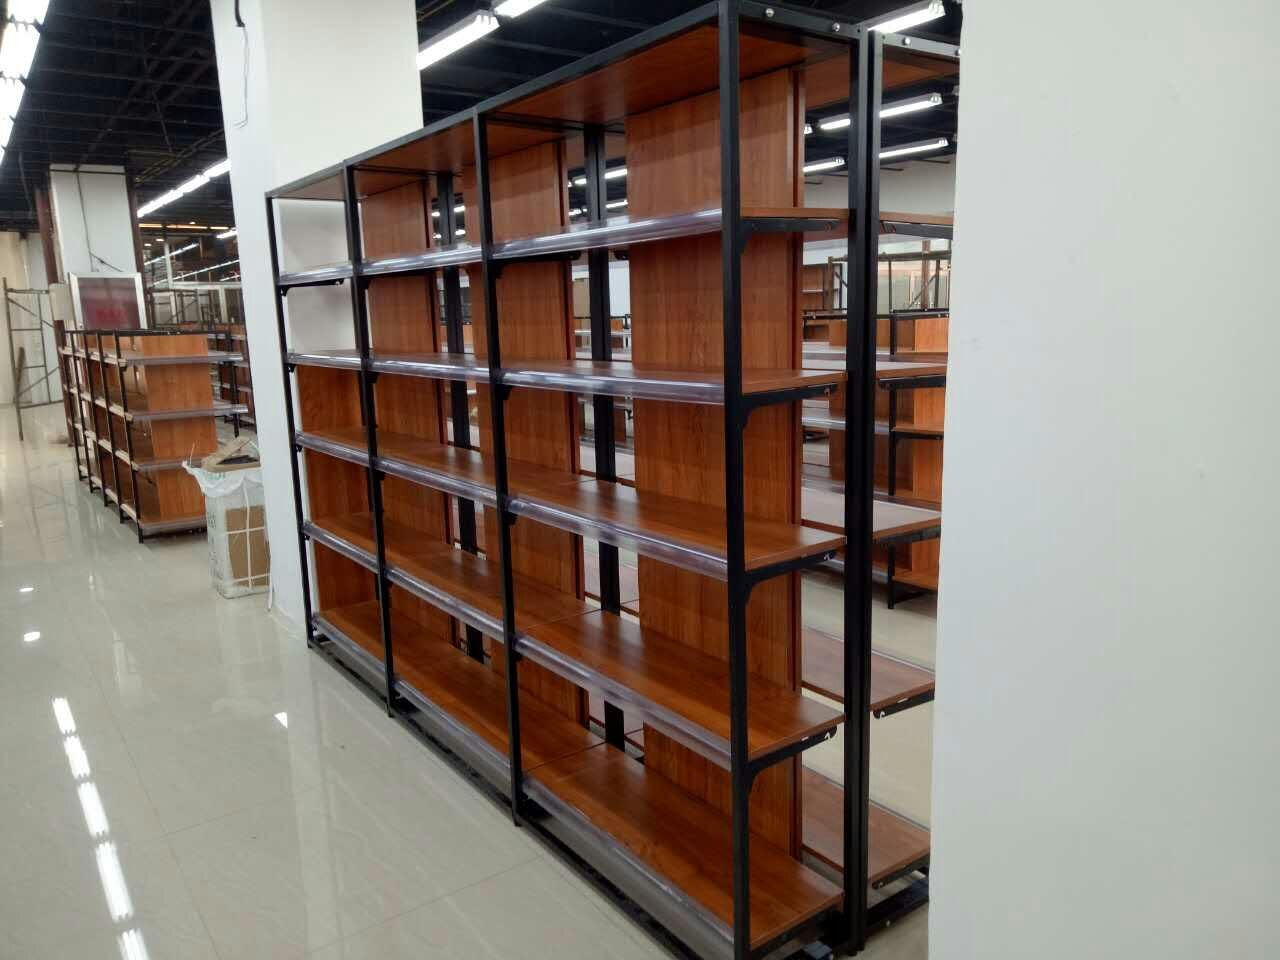 ISO Certificated Hebei Woke Supermaket Shelving Bontique Shelving